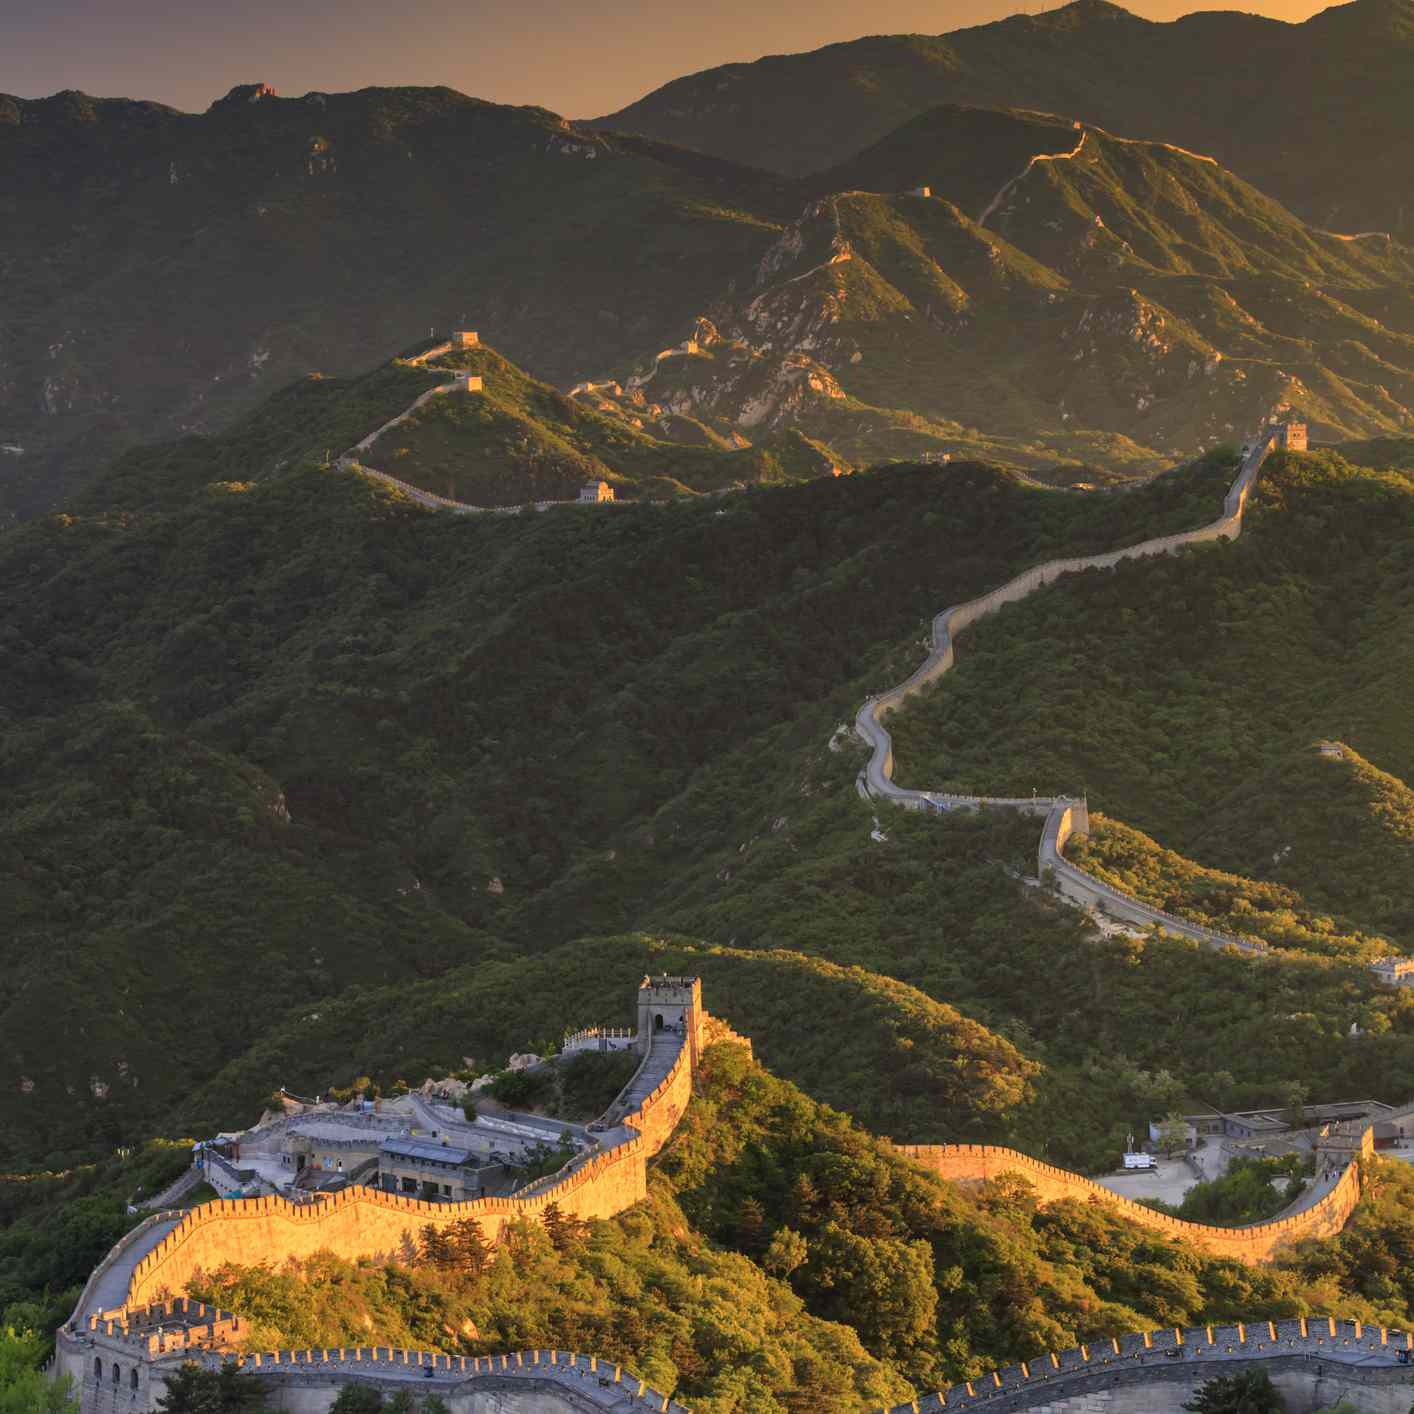 Sunset at the Badaling Section of the Great Wall